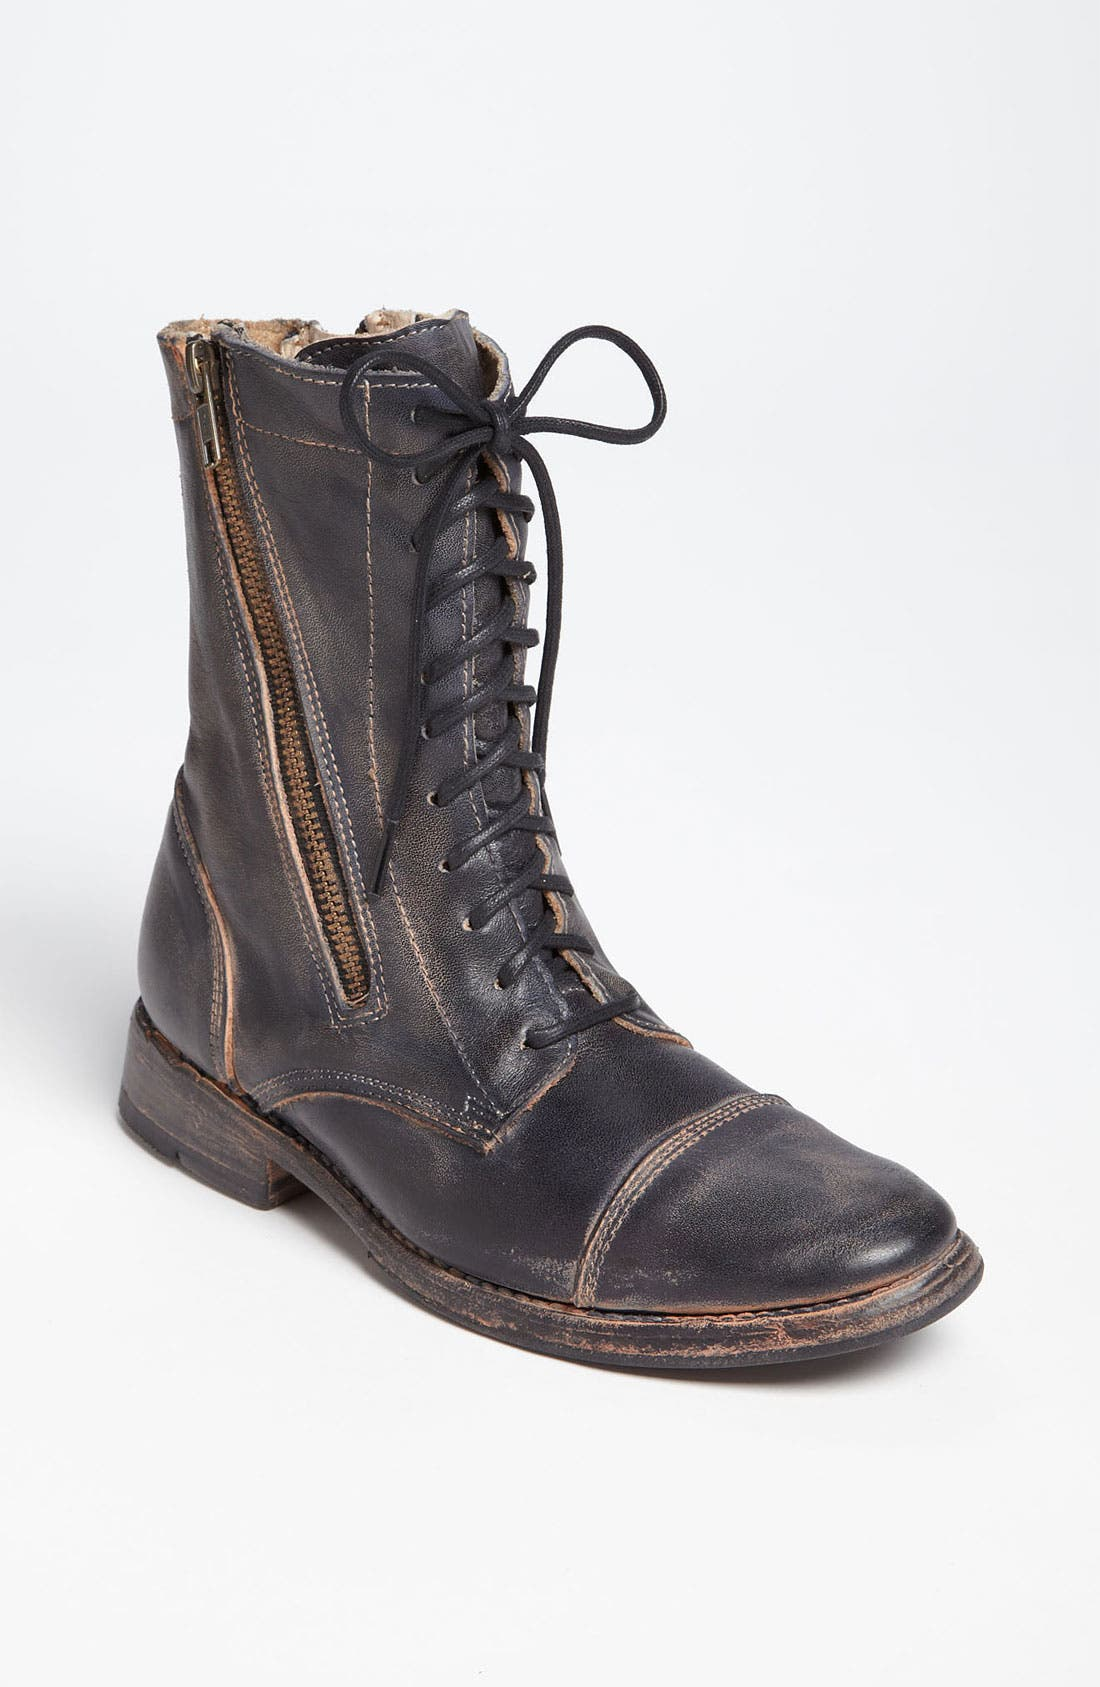 Alternate Image 1 Selected - Bed Stu 'Tabor' Lace-Up Boot